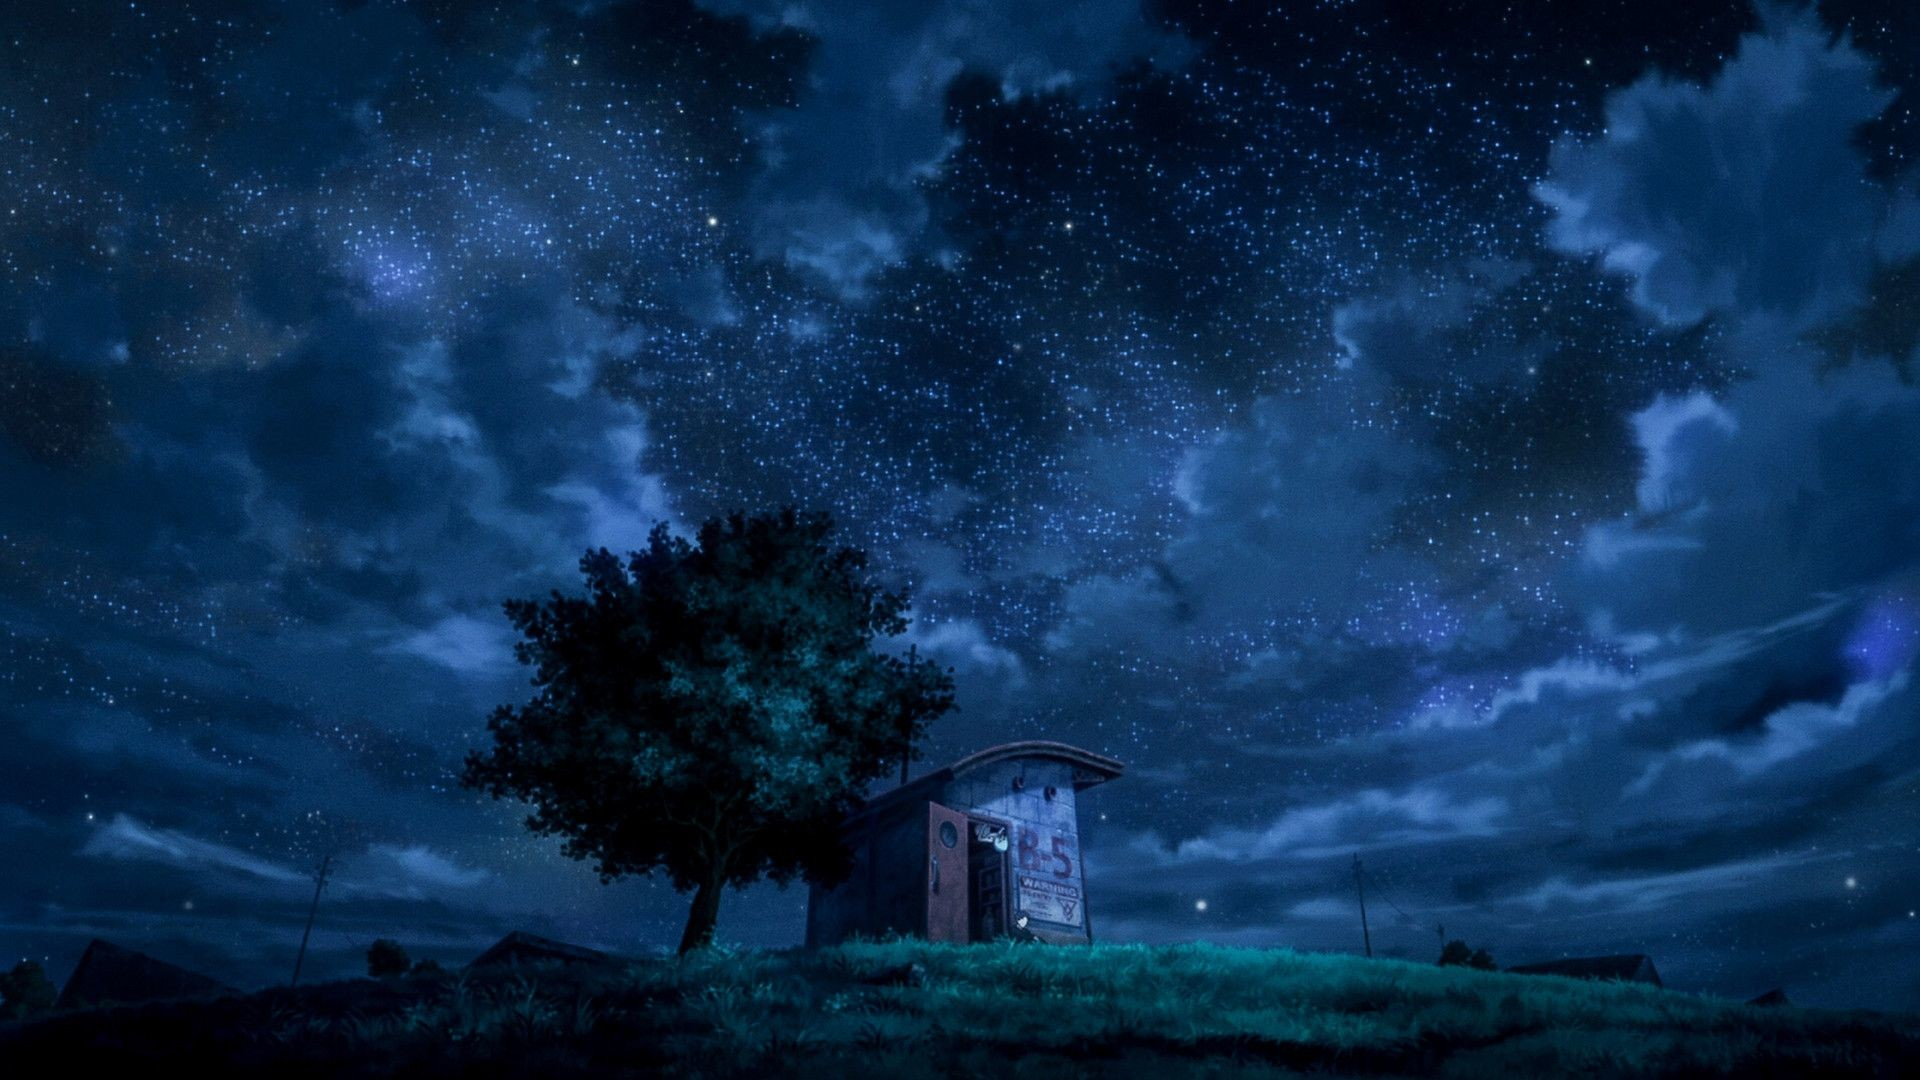 Dark Anime Scenery Wallpapers (77+ background pictures)